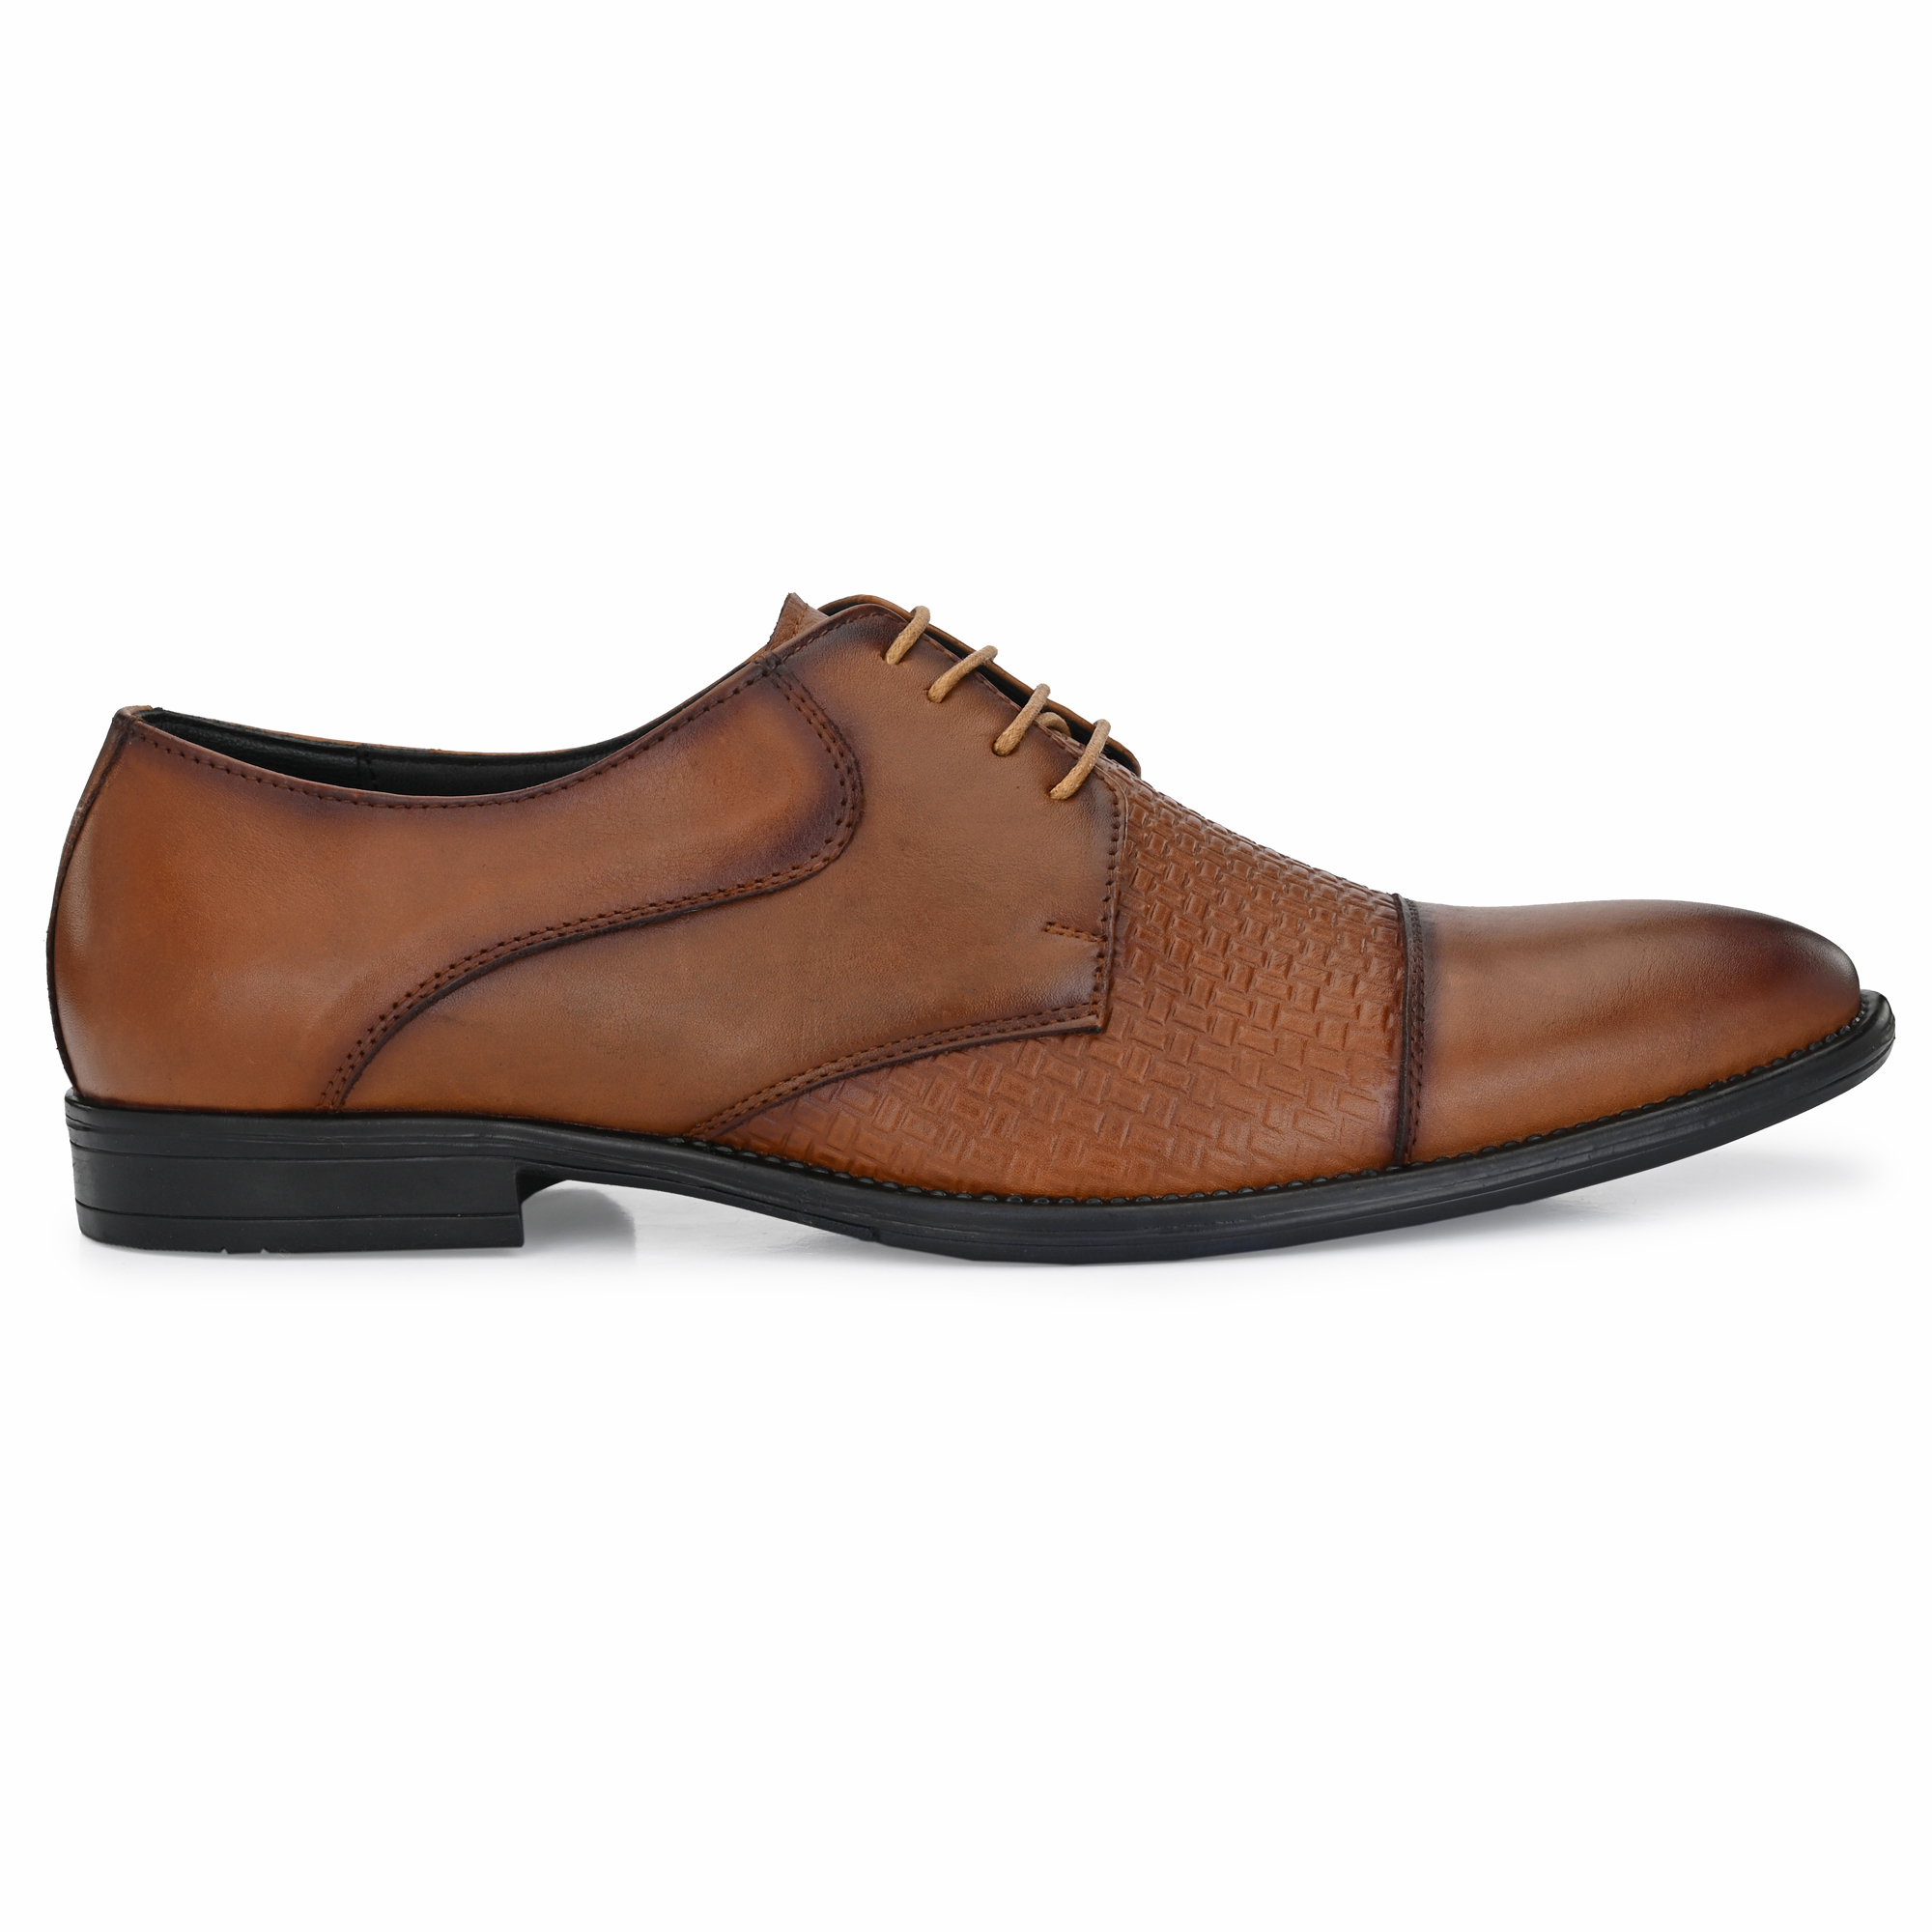 BRIFAR COMFORTABLE & TRENDY GENUINE LEATHERS FORMAL SHOES ARE RELIABLE FOR ANY MJ9TN (6-9, TAN, 4 PAIR)